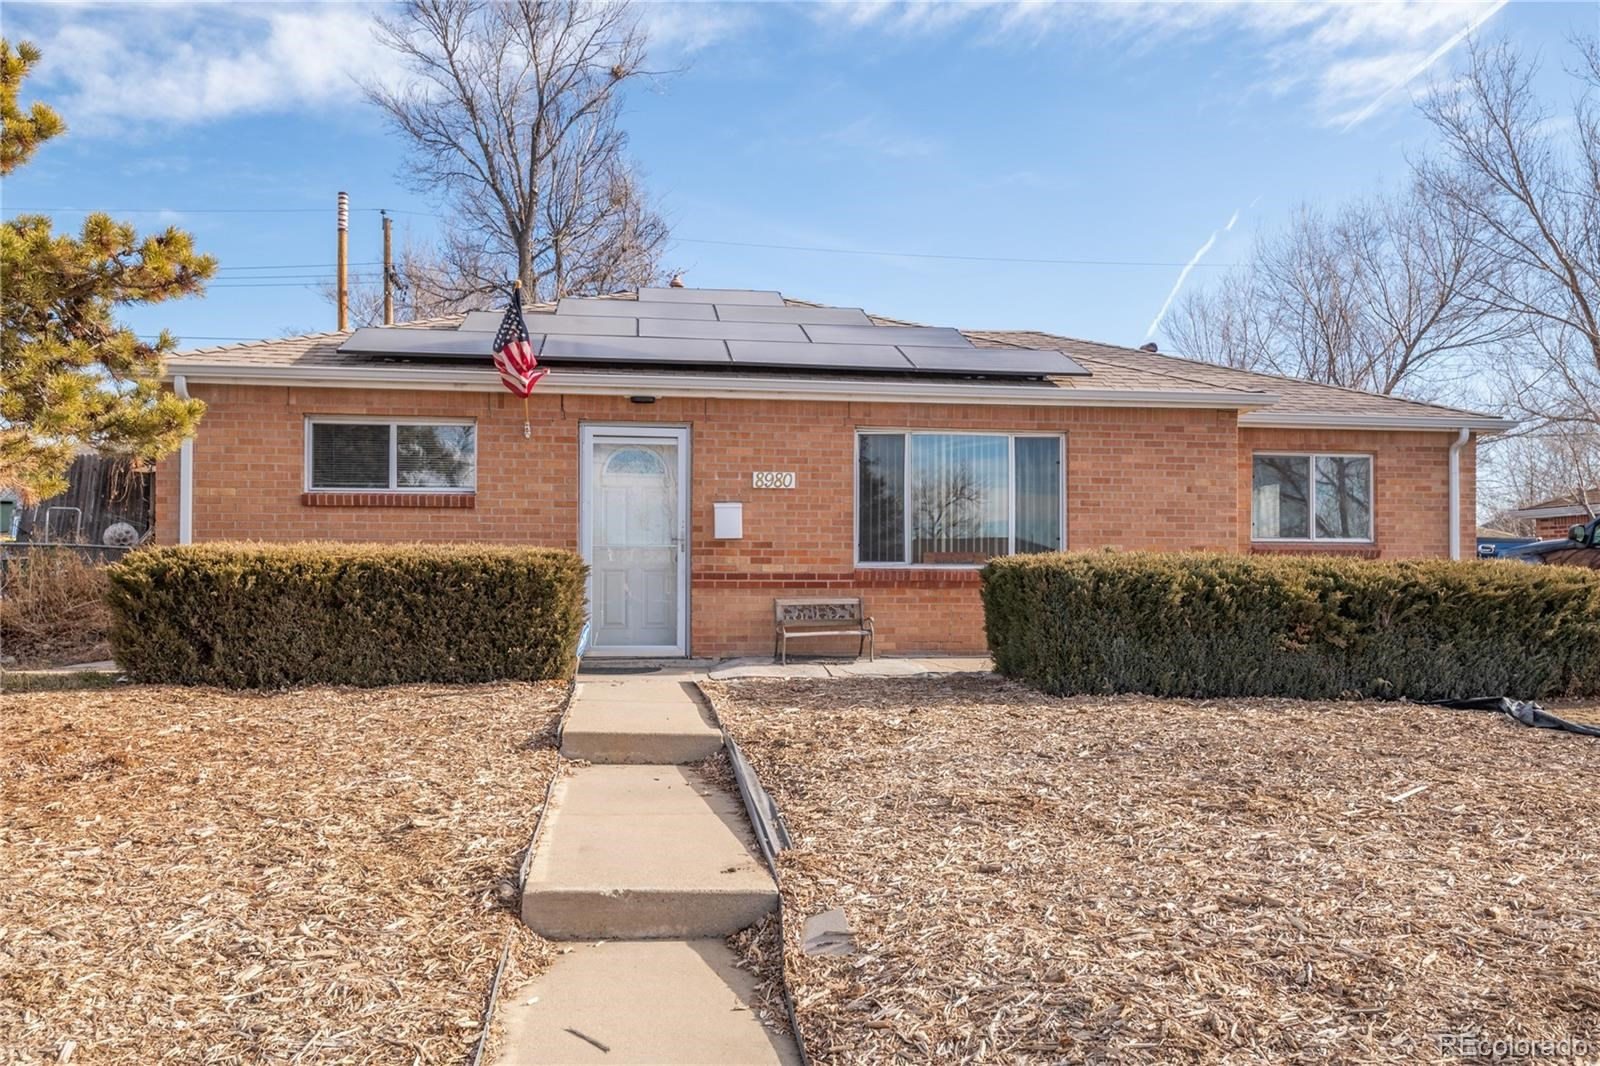 MLS# 4674292 - 1 - 8980 Hickory Place, Thornton, CO 80229